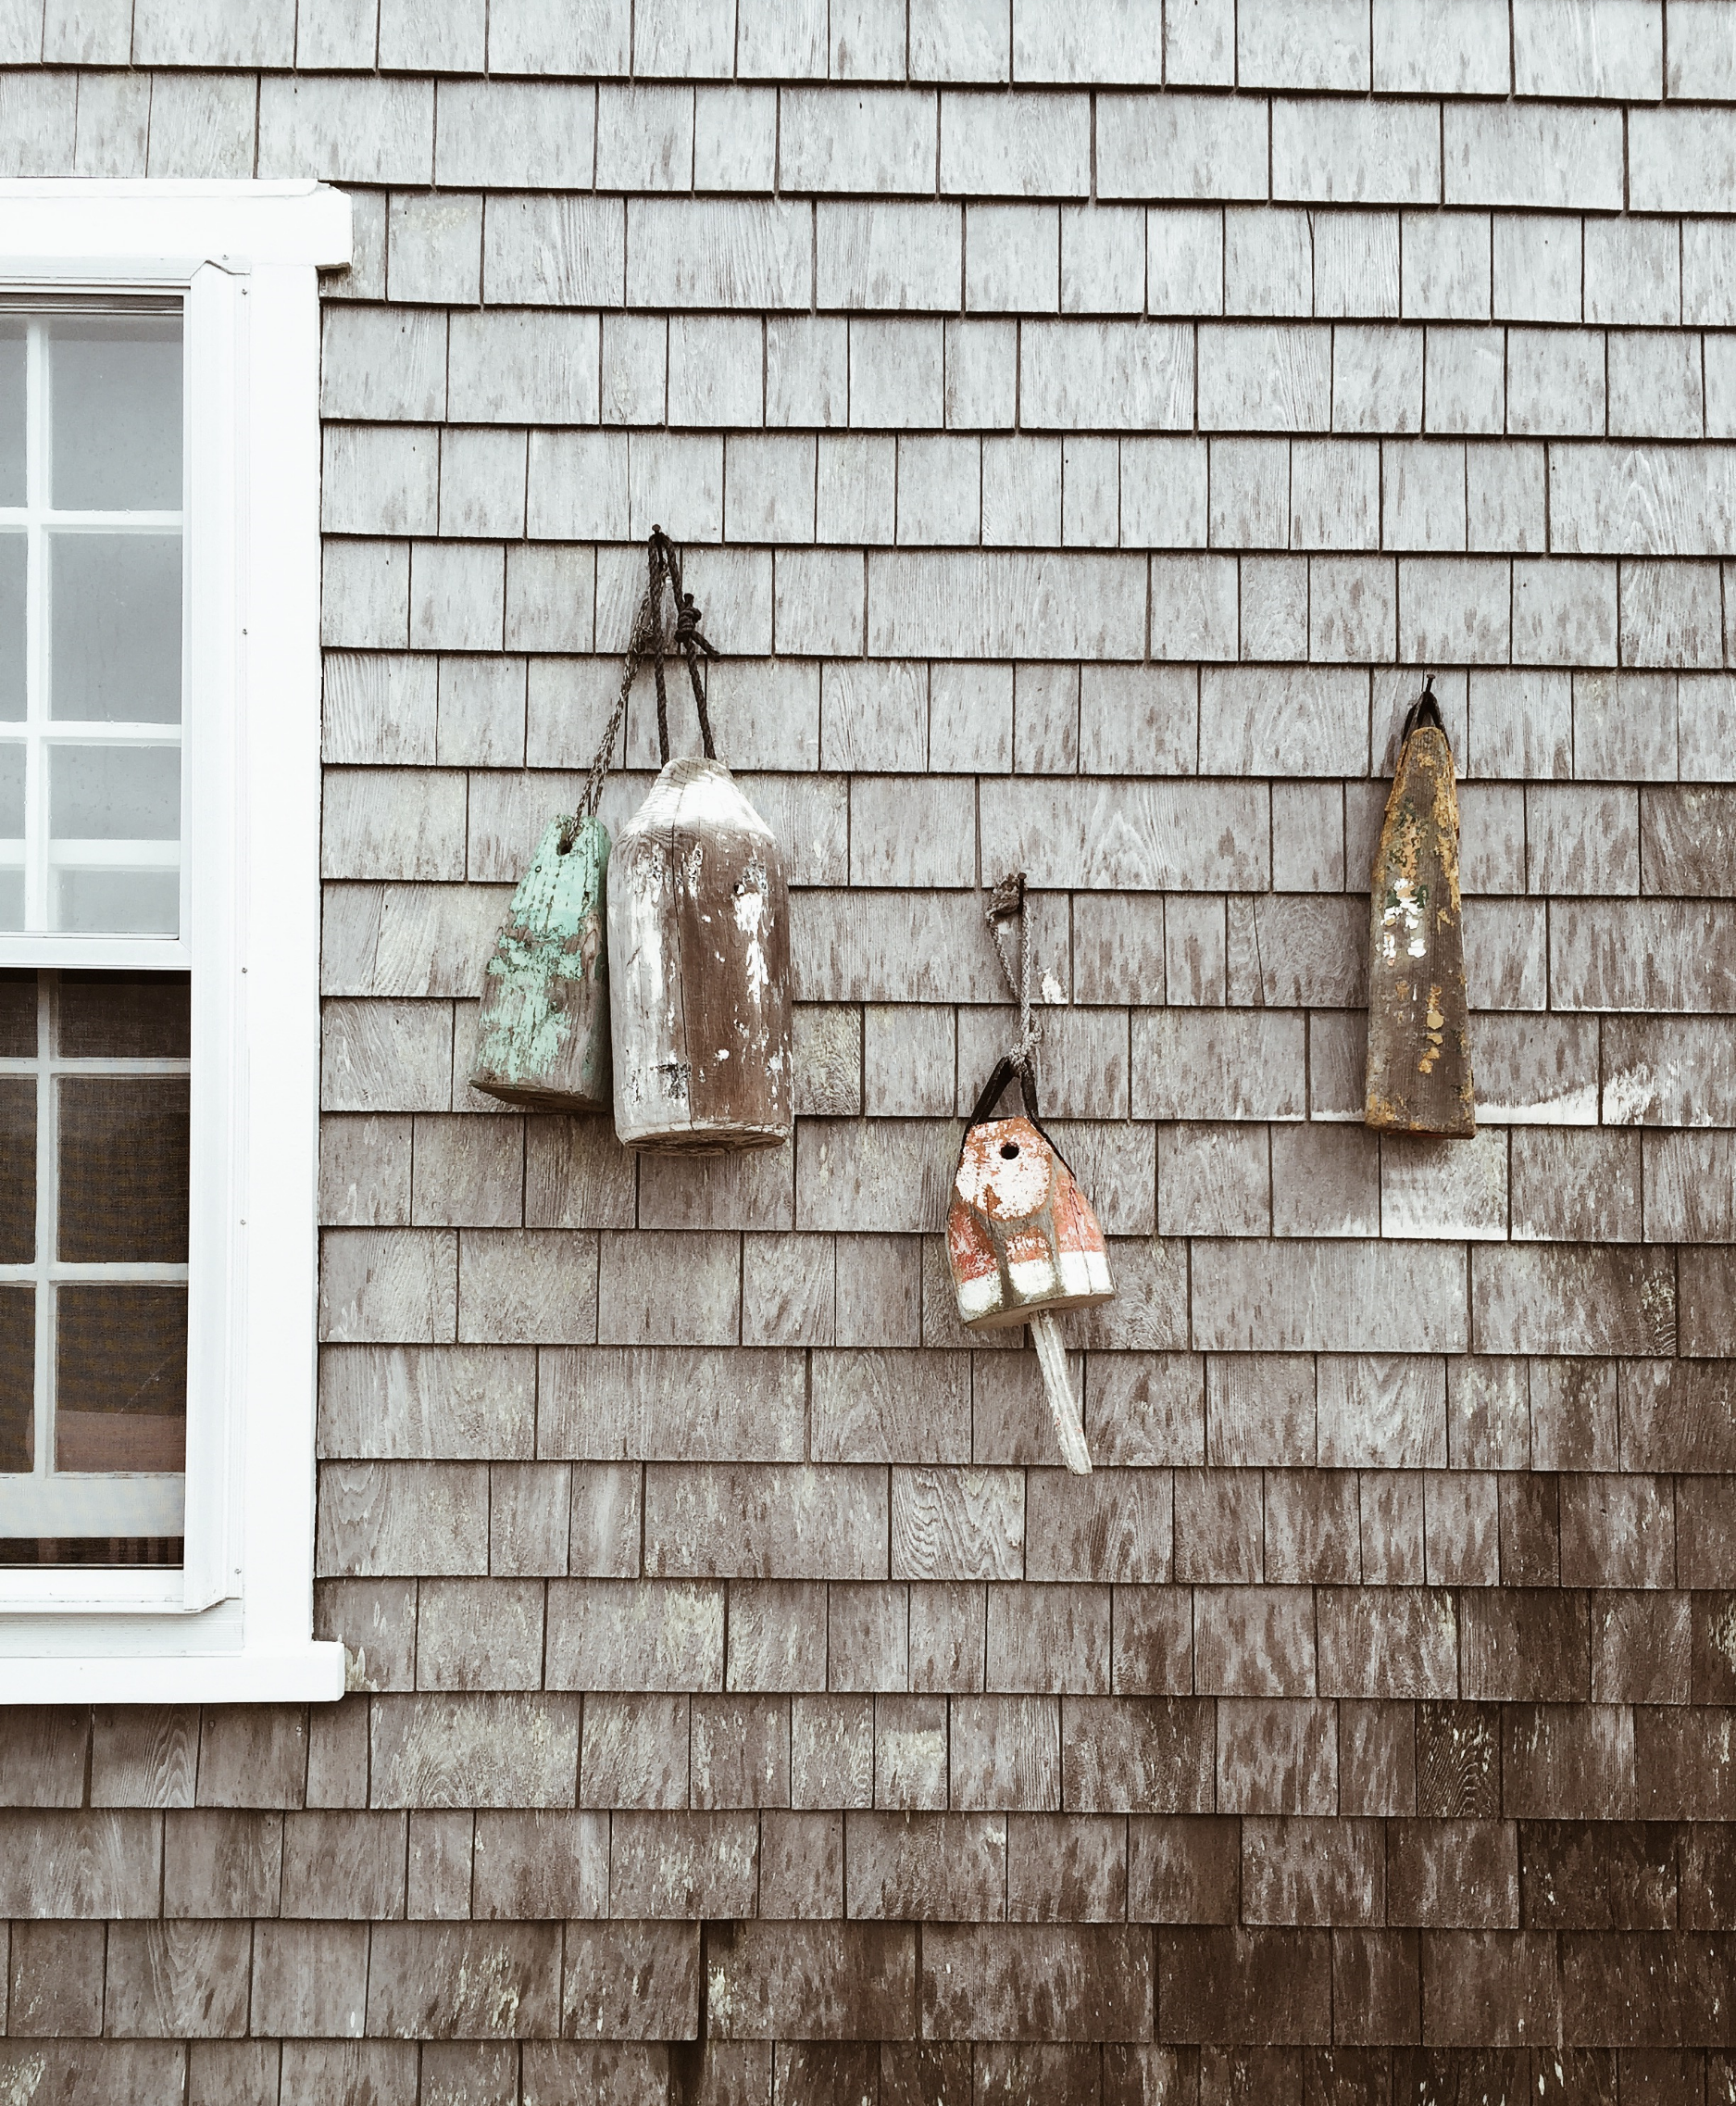 {Love all the textures in this shot of buoys hung on the side of a house}